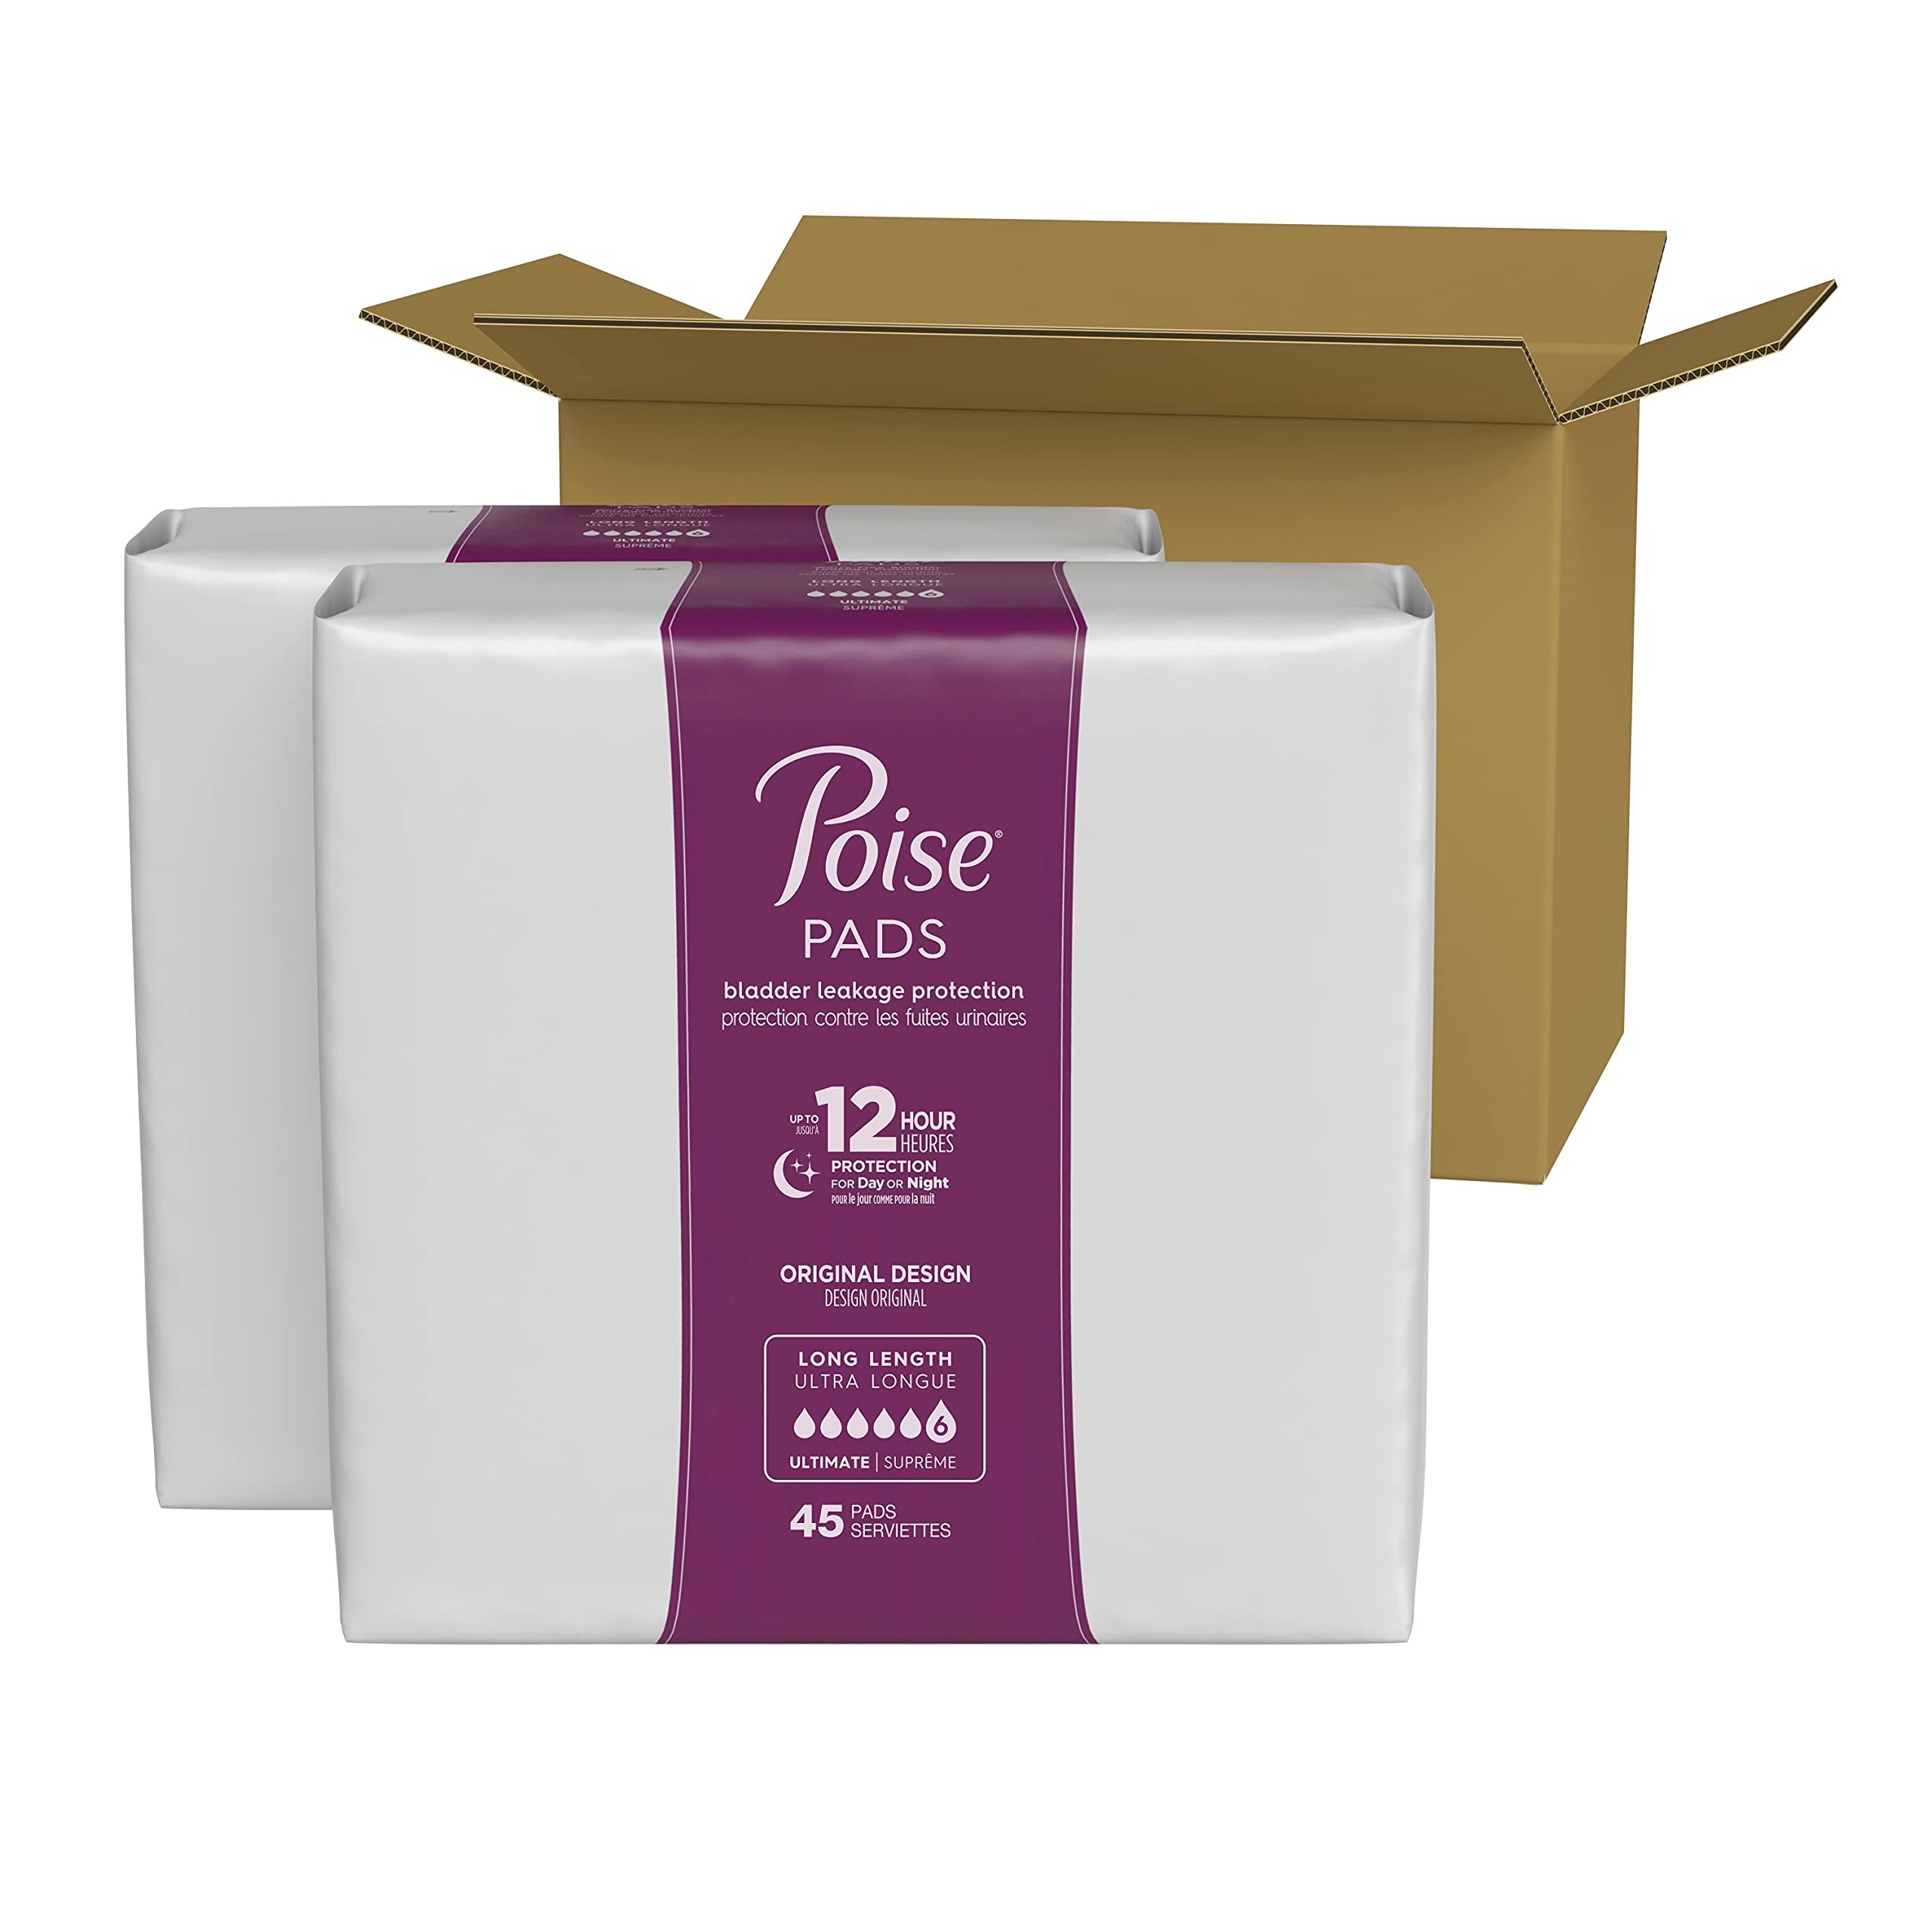 Poise Incontinence Pads for Women, Ultimate Absorbency, Long, Original Design, 90 Count (2 Packs of 45) (Packaging May Vary)